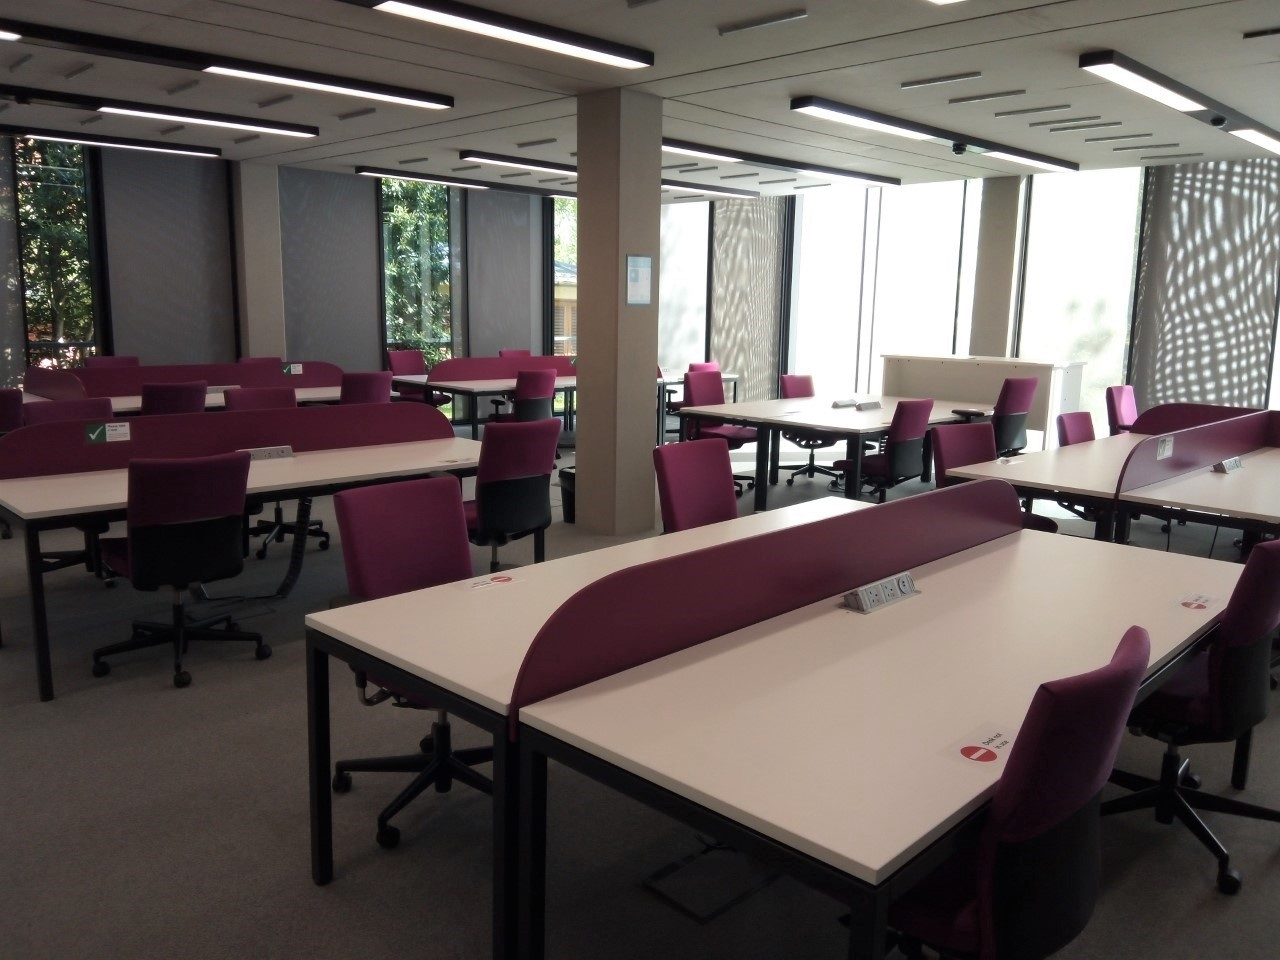 Photo of desks in the EGSR. Large desks that have a partition down the centre, height adjustable seating.